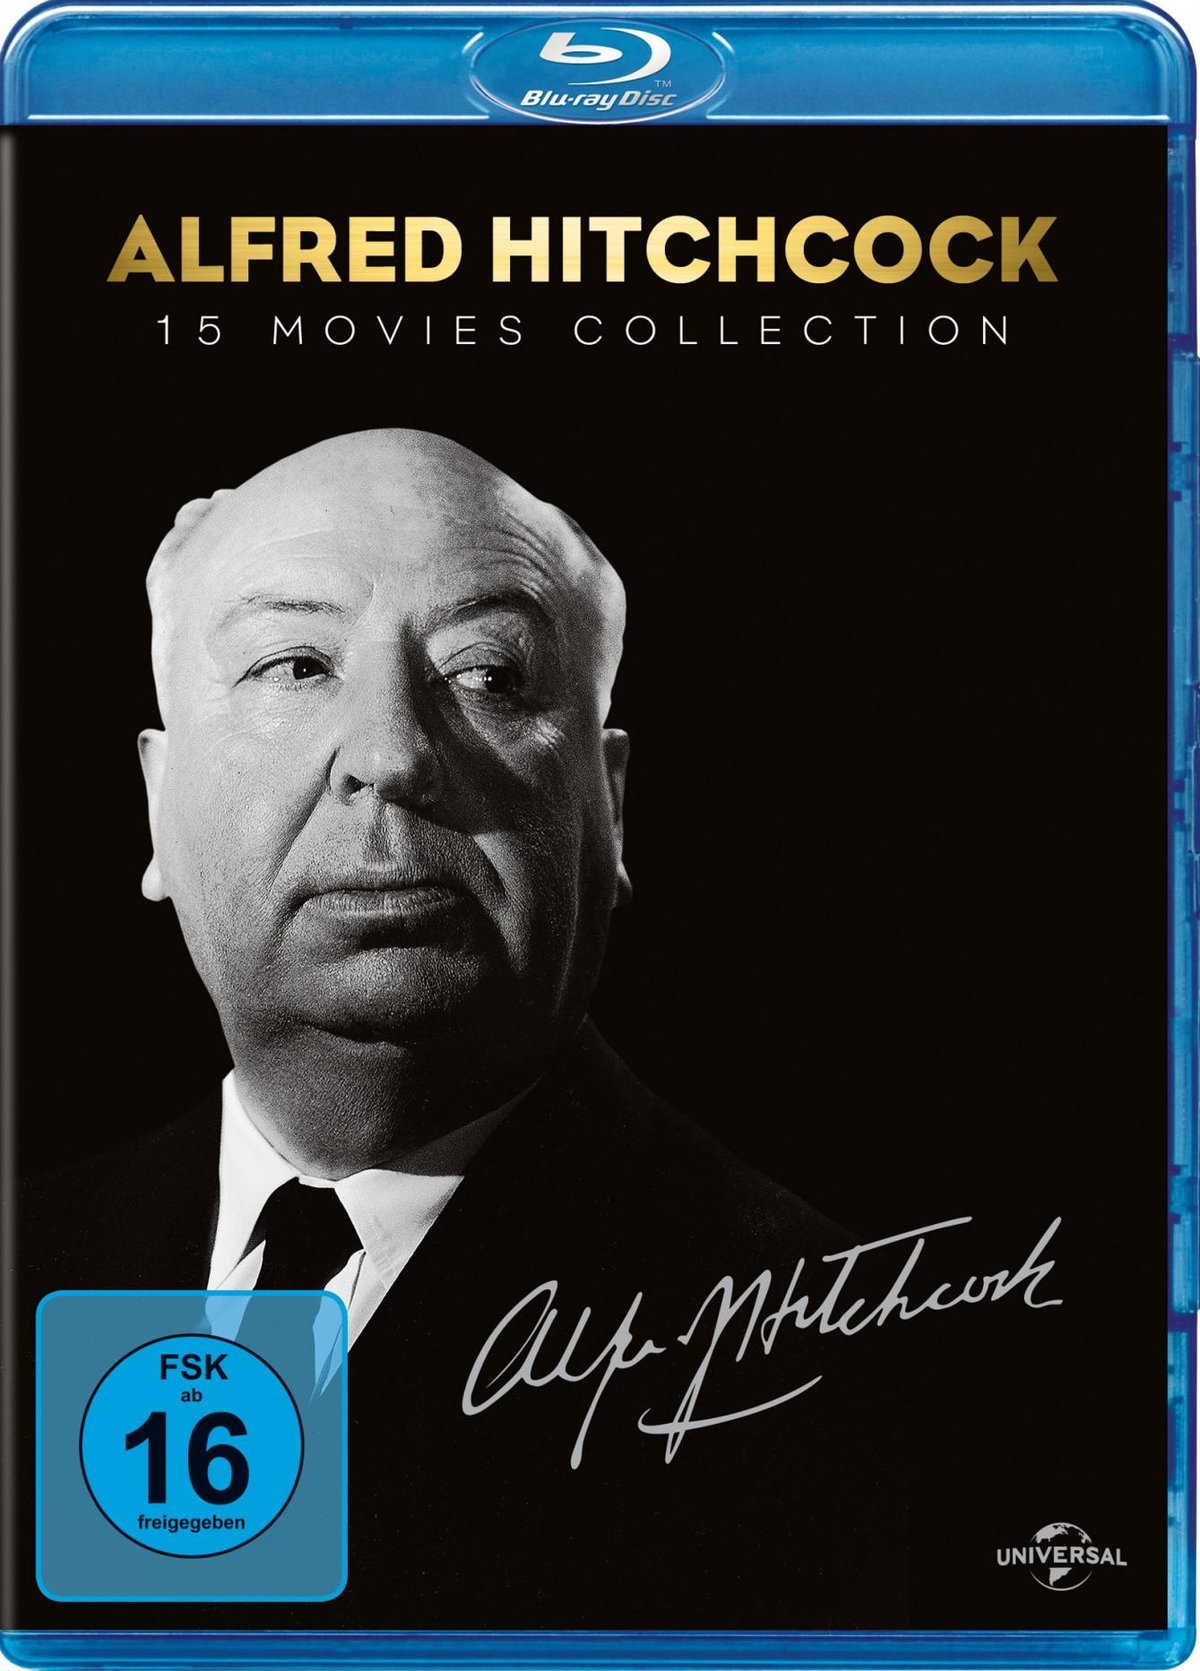 Alfred Hitchcock - 15 Movies Collection (15 Blu-rays)